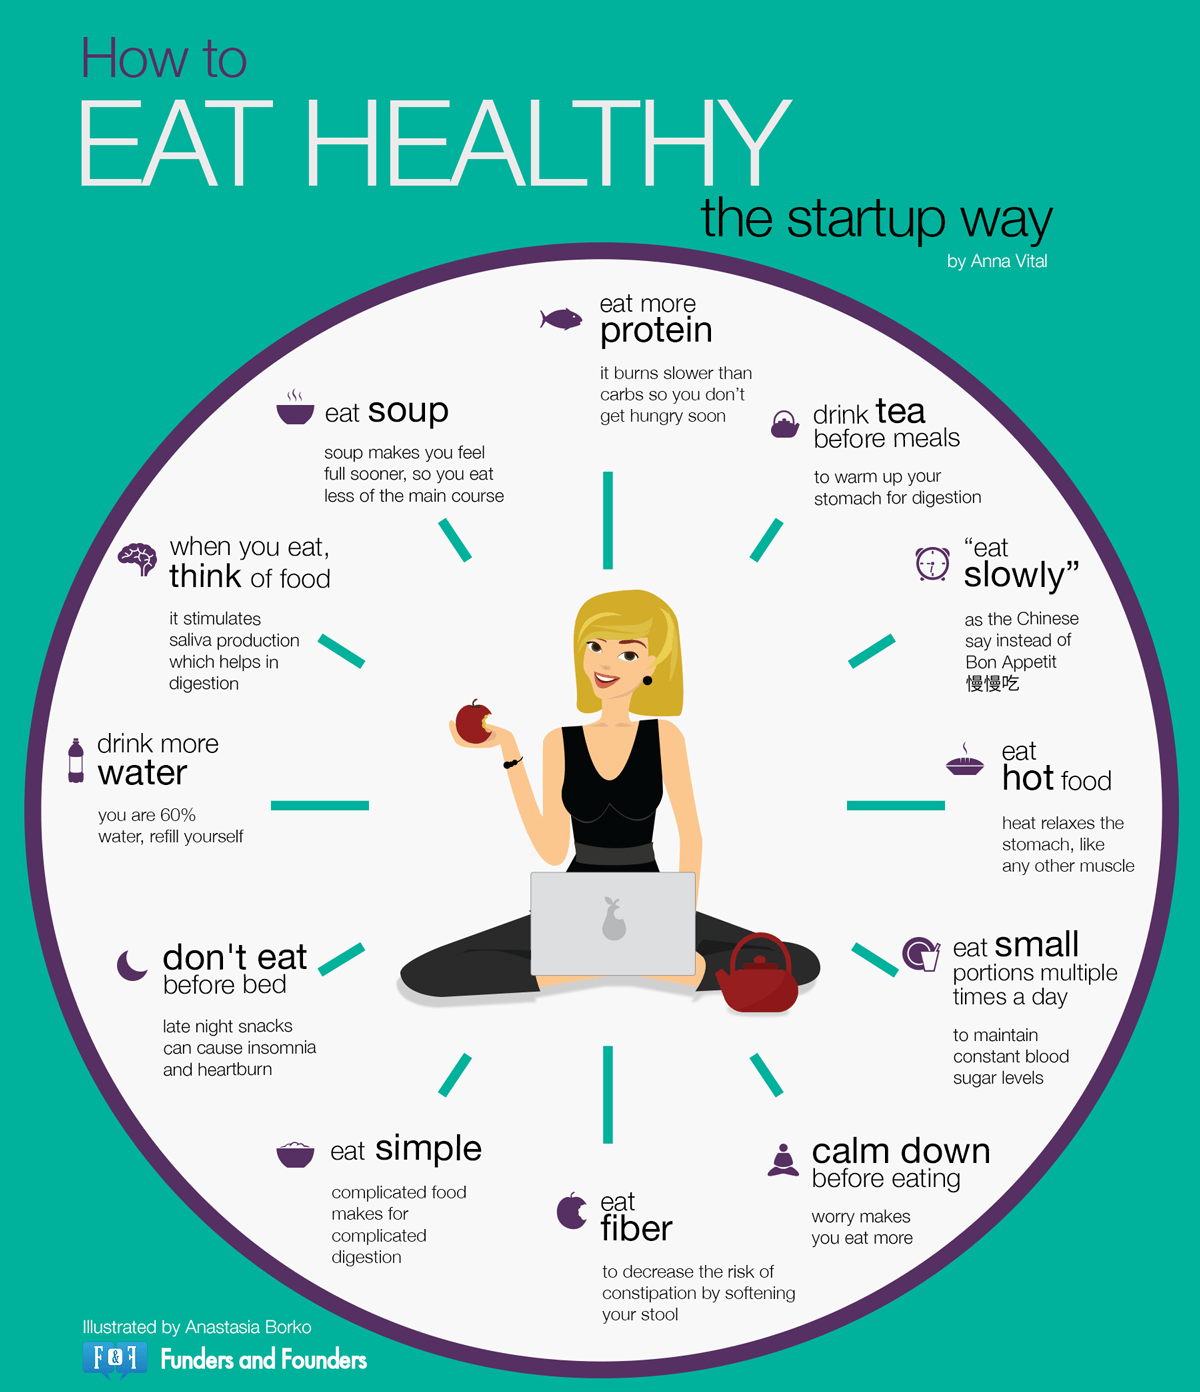 How To Eat Healthy The startup way Illustrated by